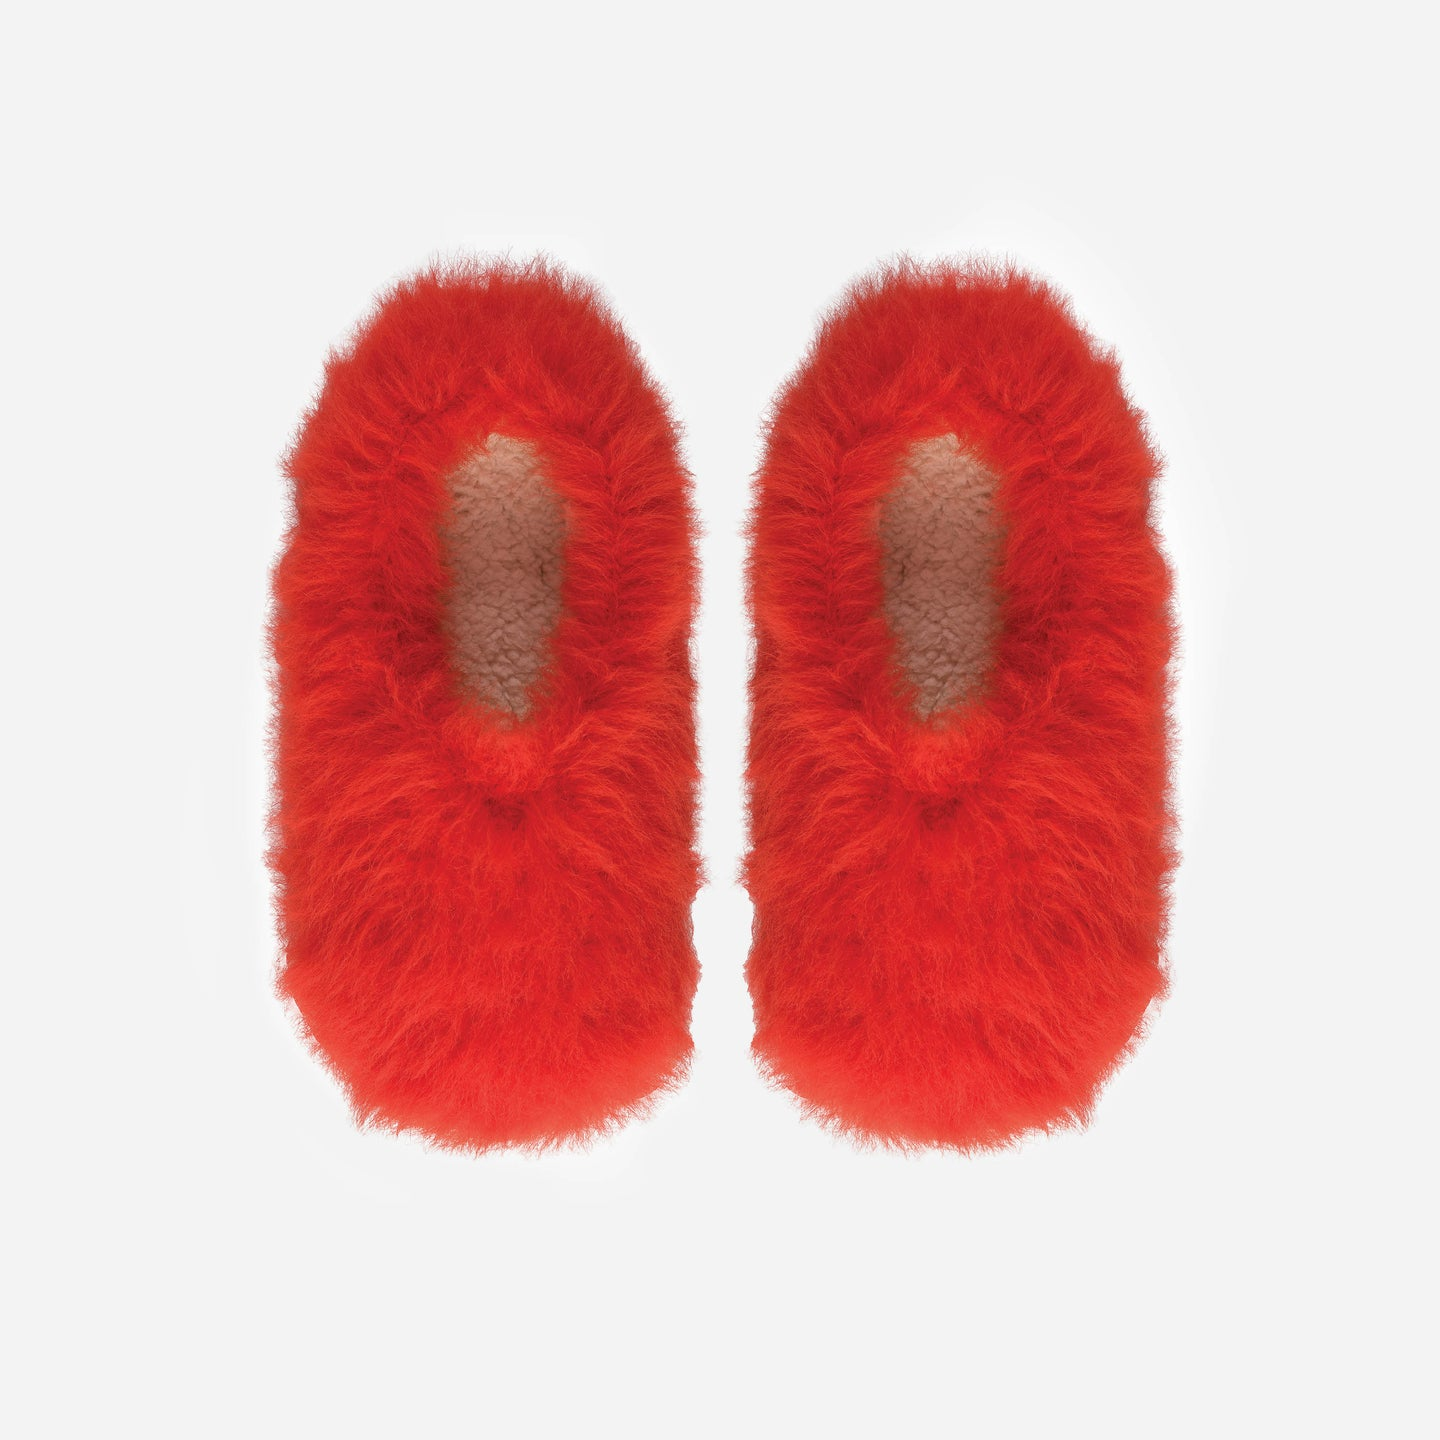 Faux Fur Fuzzy Slippers